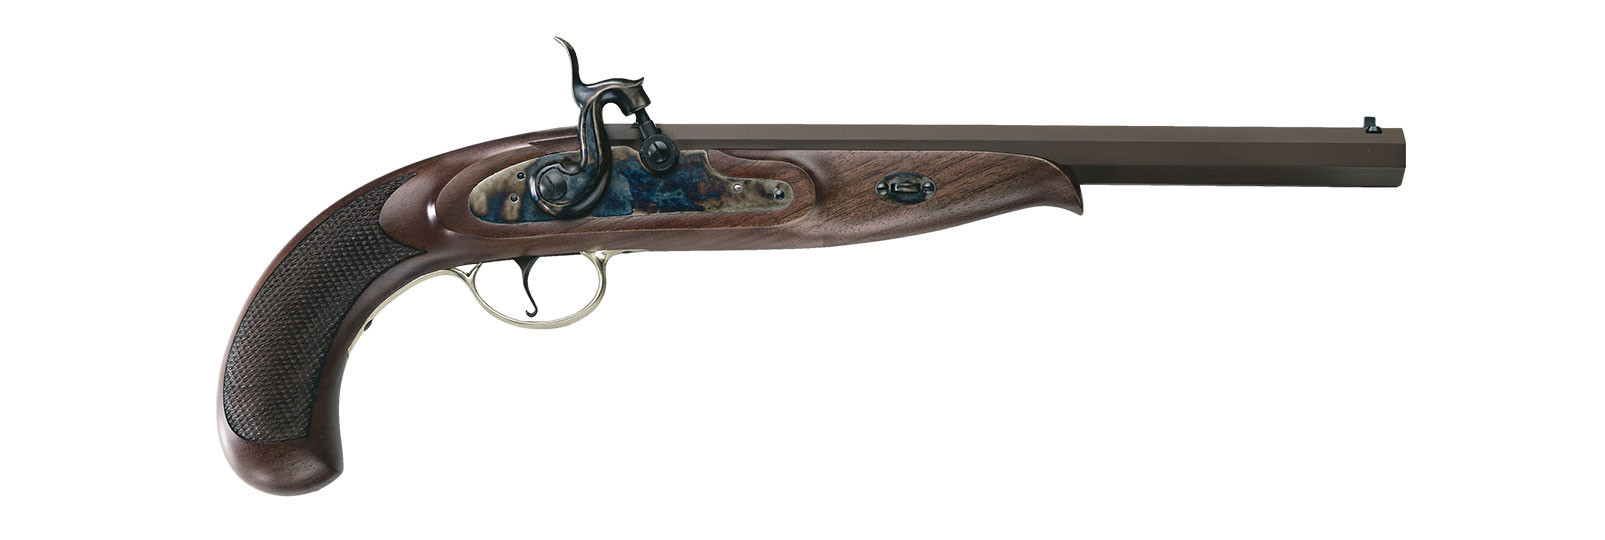 Continental Duelling Pistol percussion model